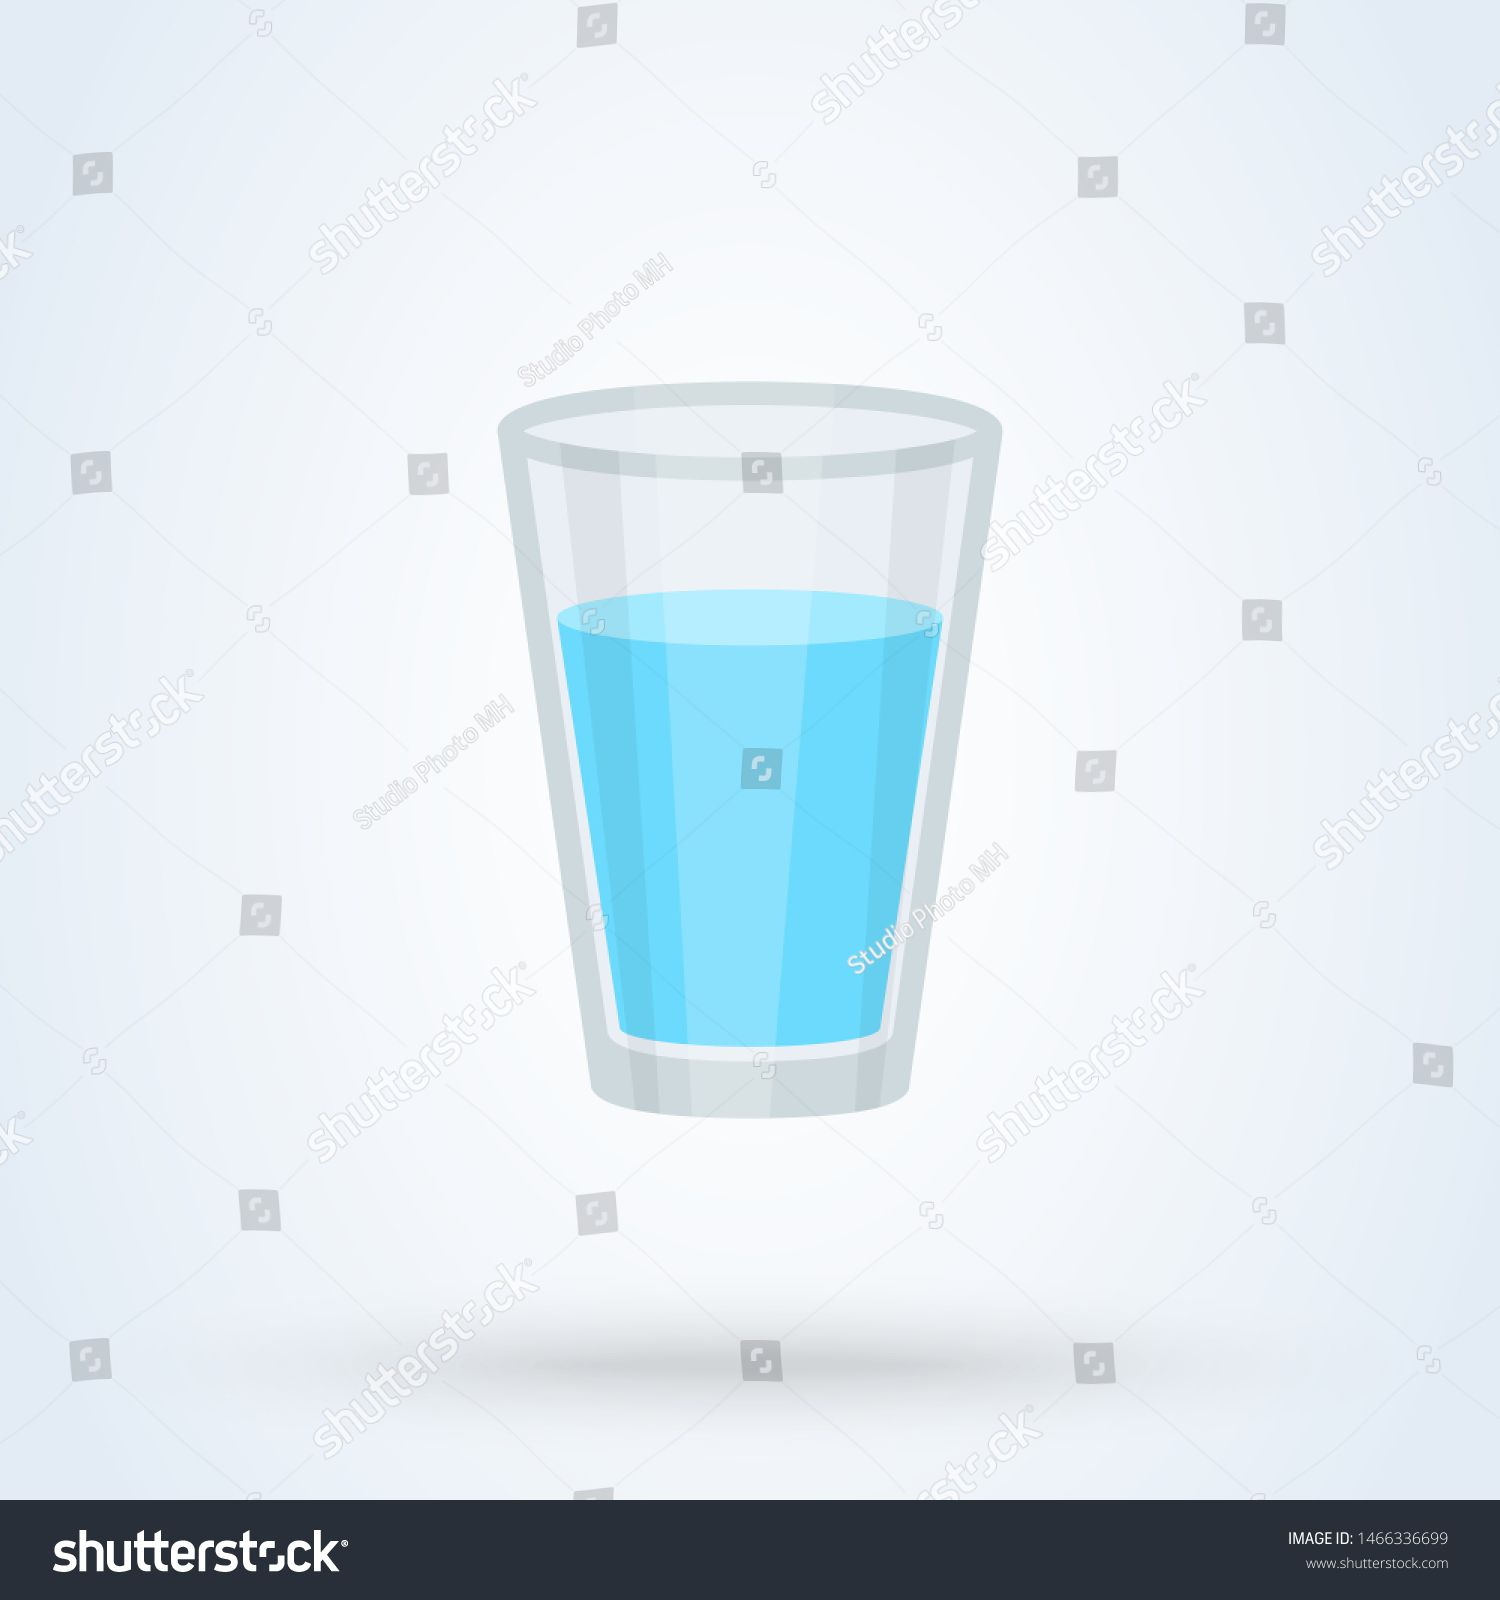 Glass Of Water Flat Design Vector Modern Icon Illustration Sponsored Sponsored Flat Design Glass Water Flat Design Presentation Design Glass Design